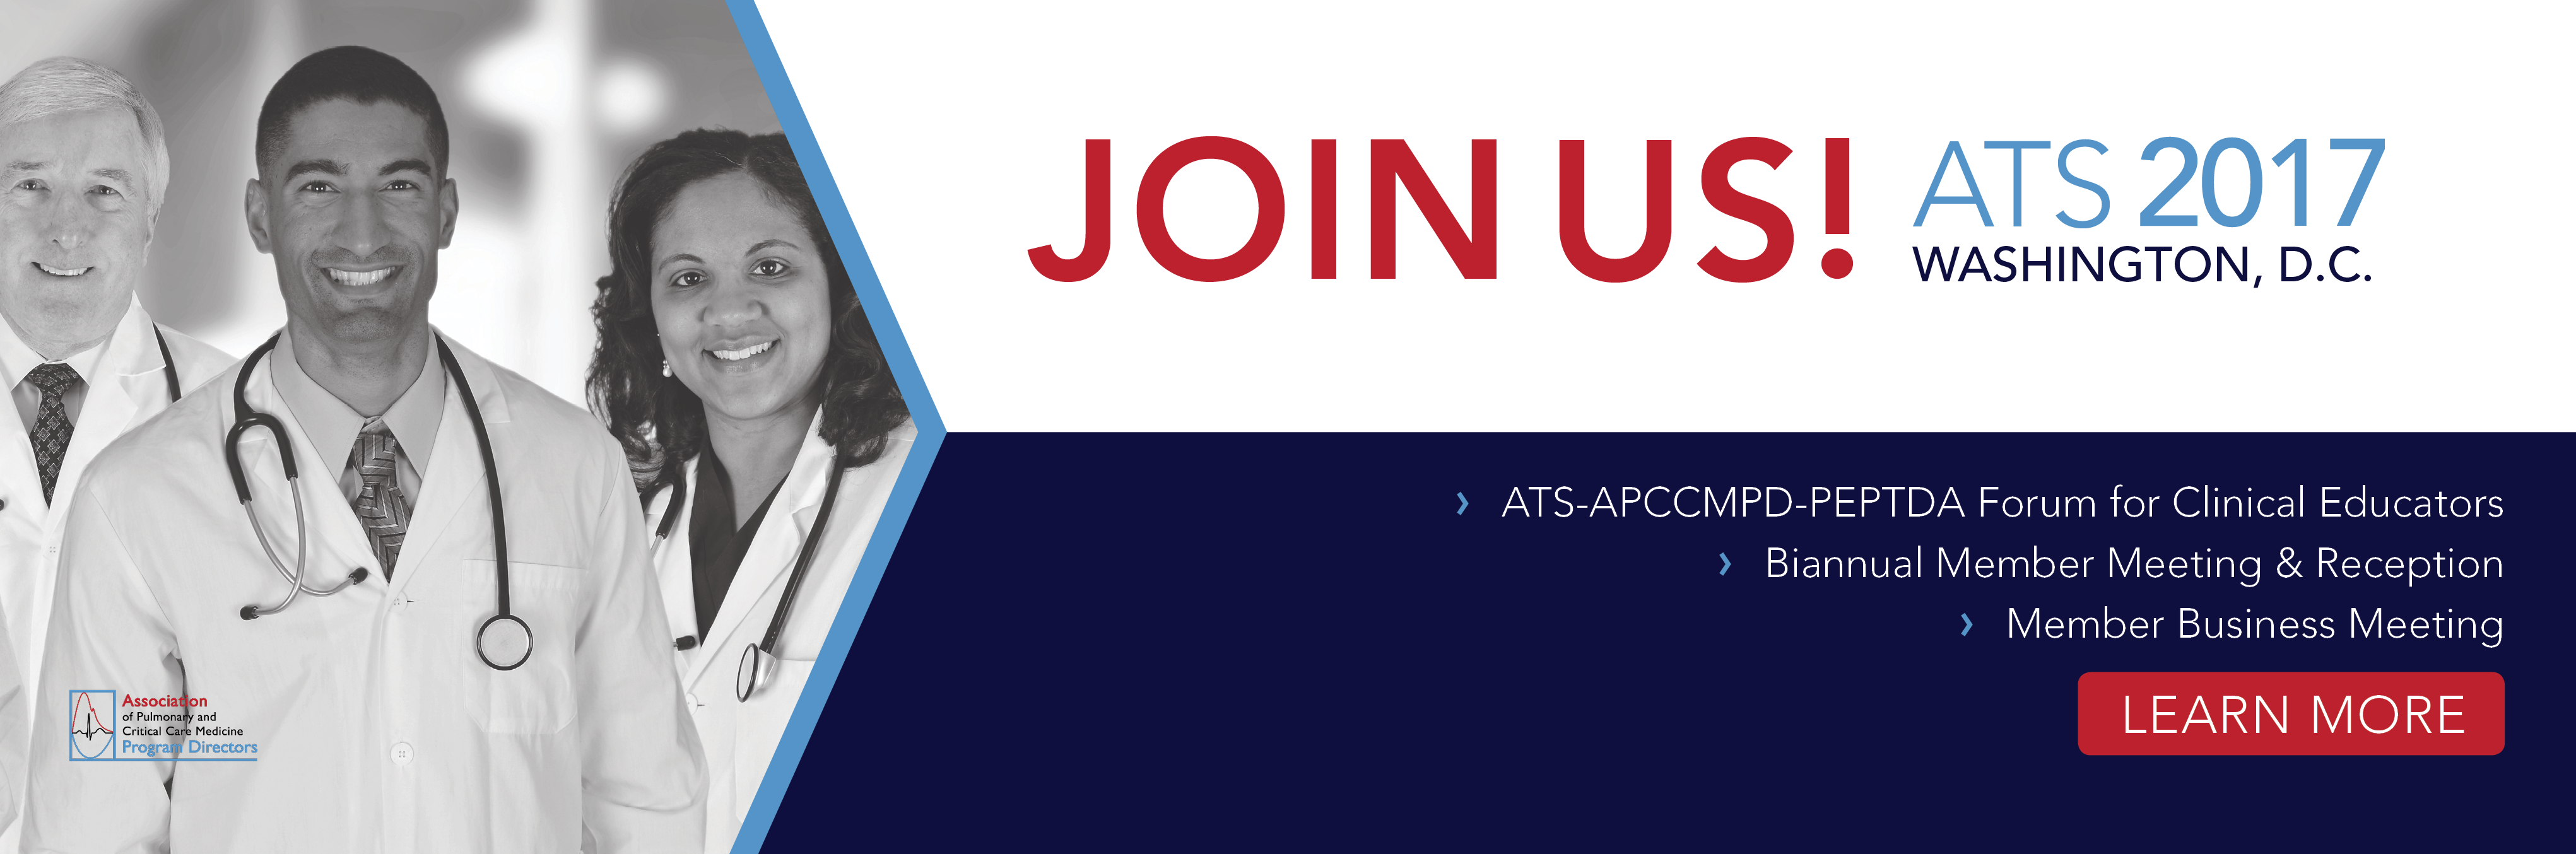 Join Us at ATS